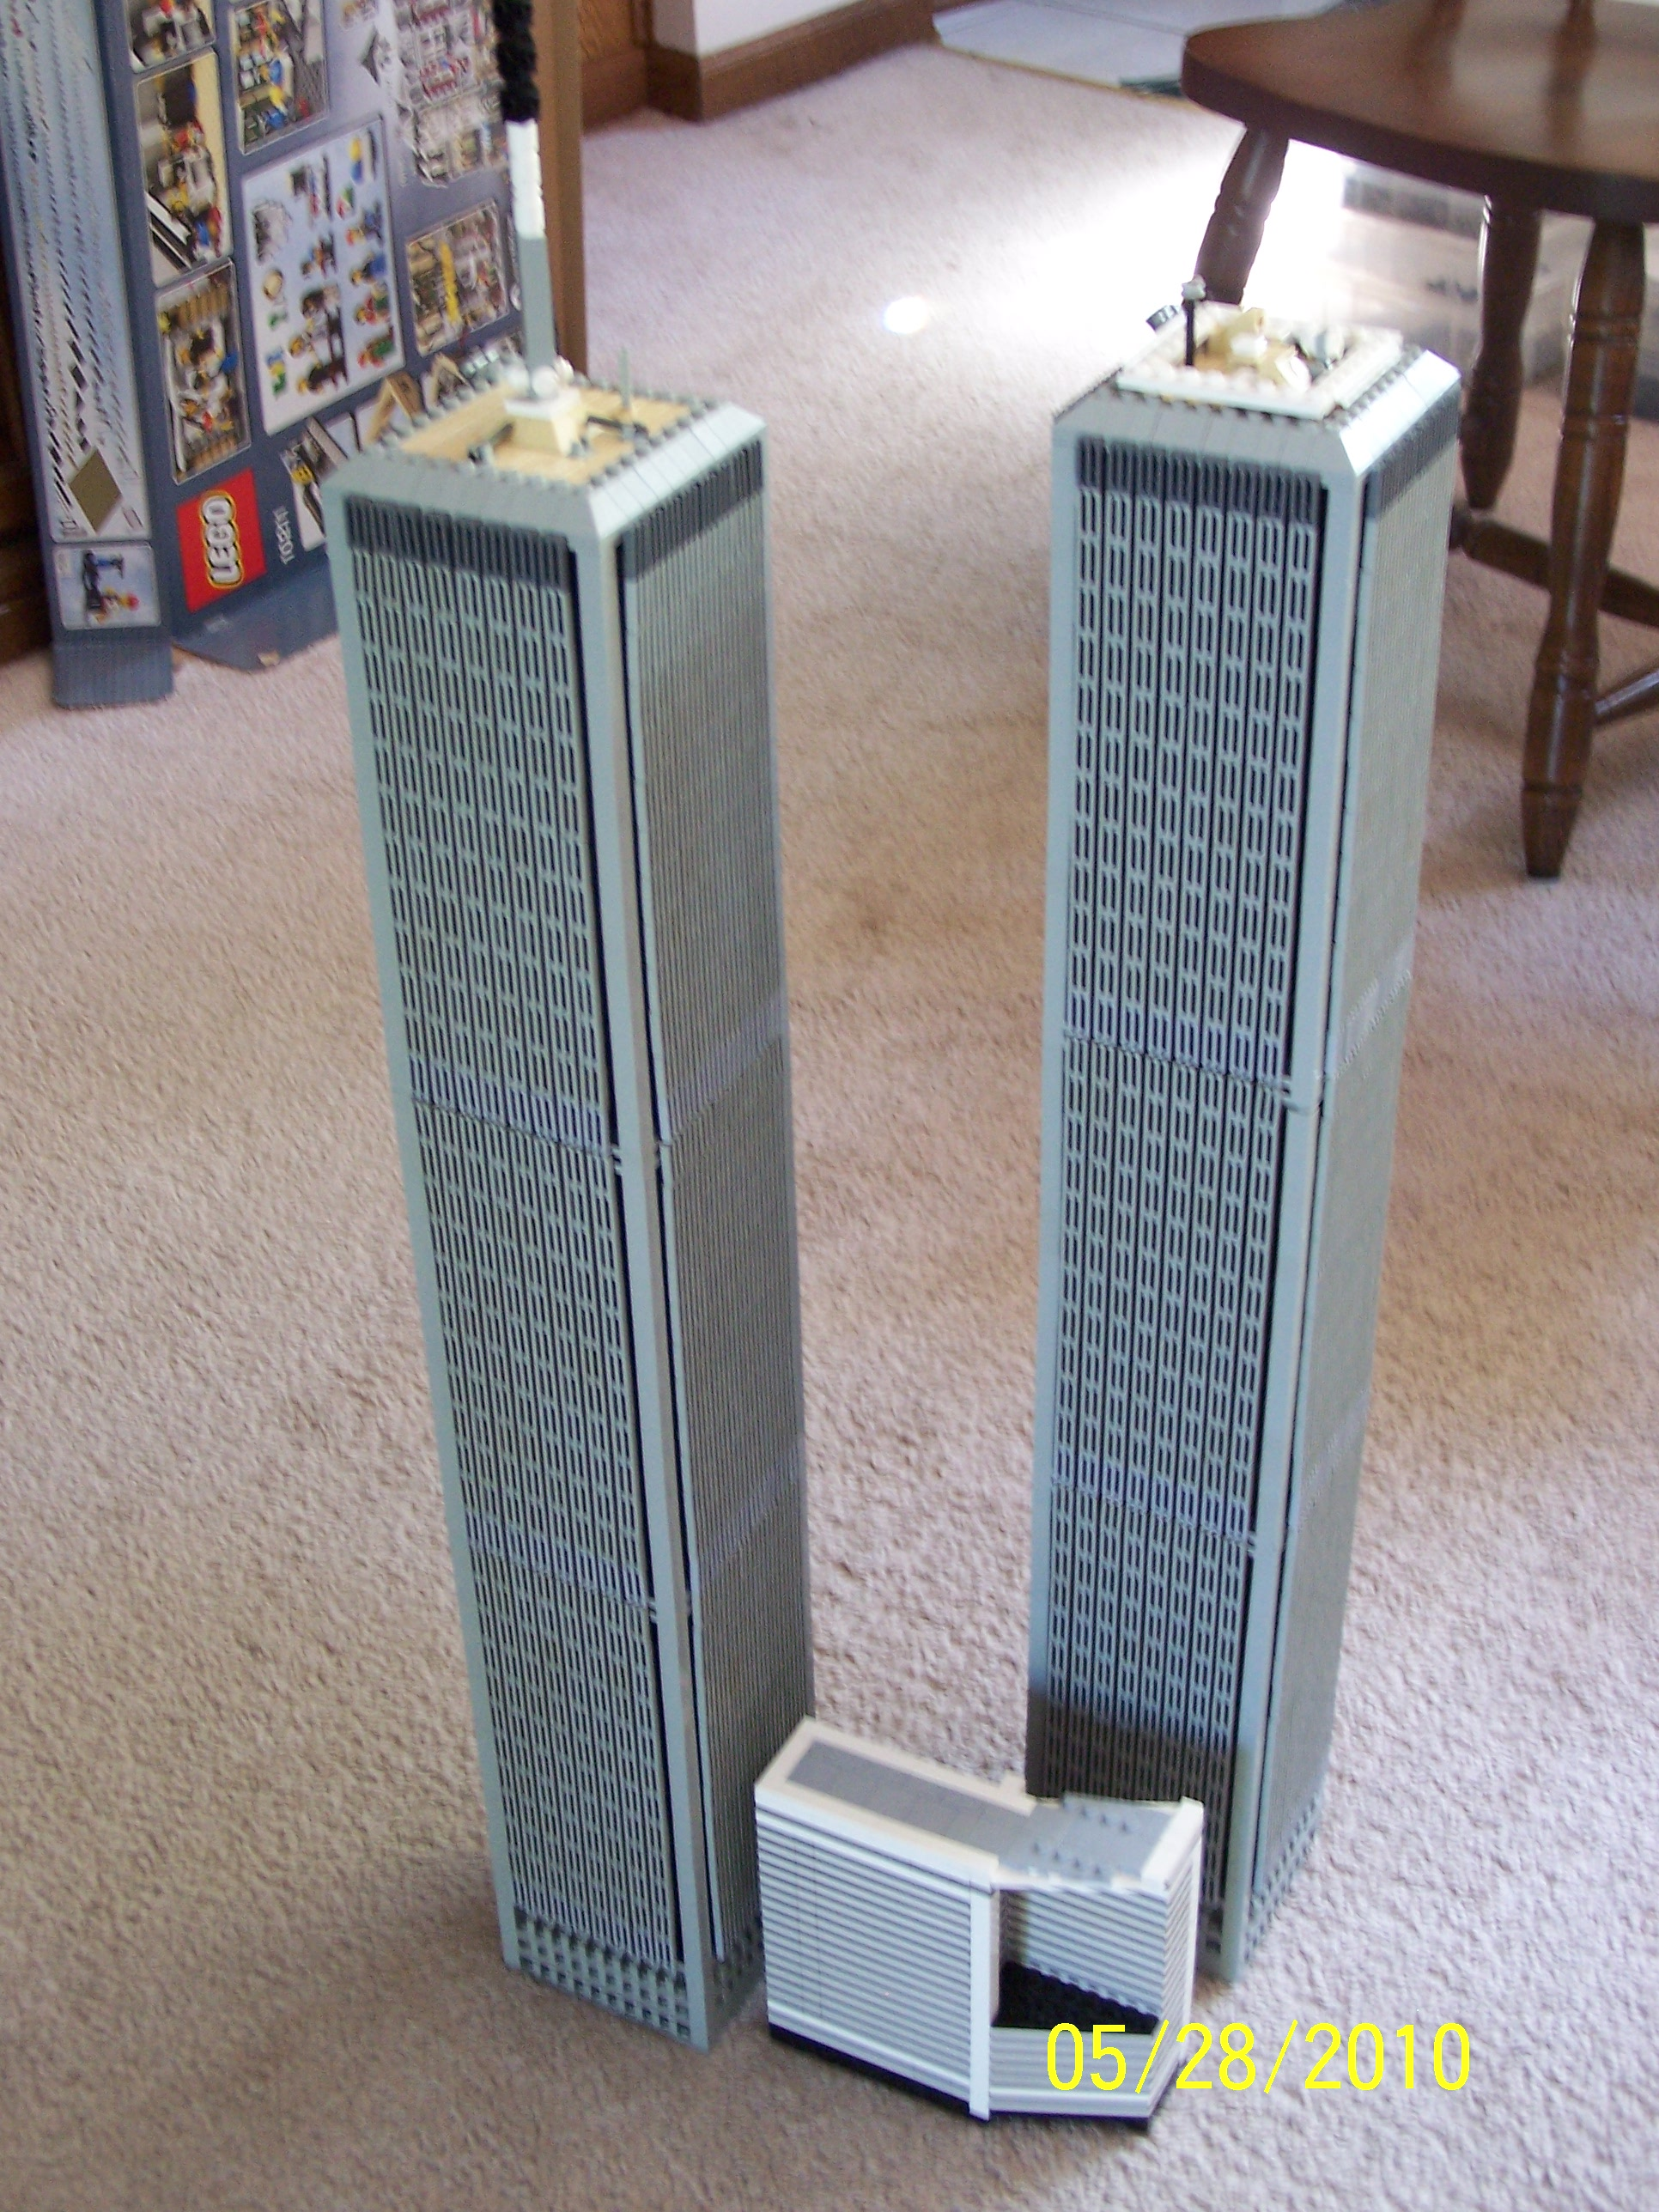 lego marina bay sands instructions